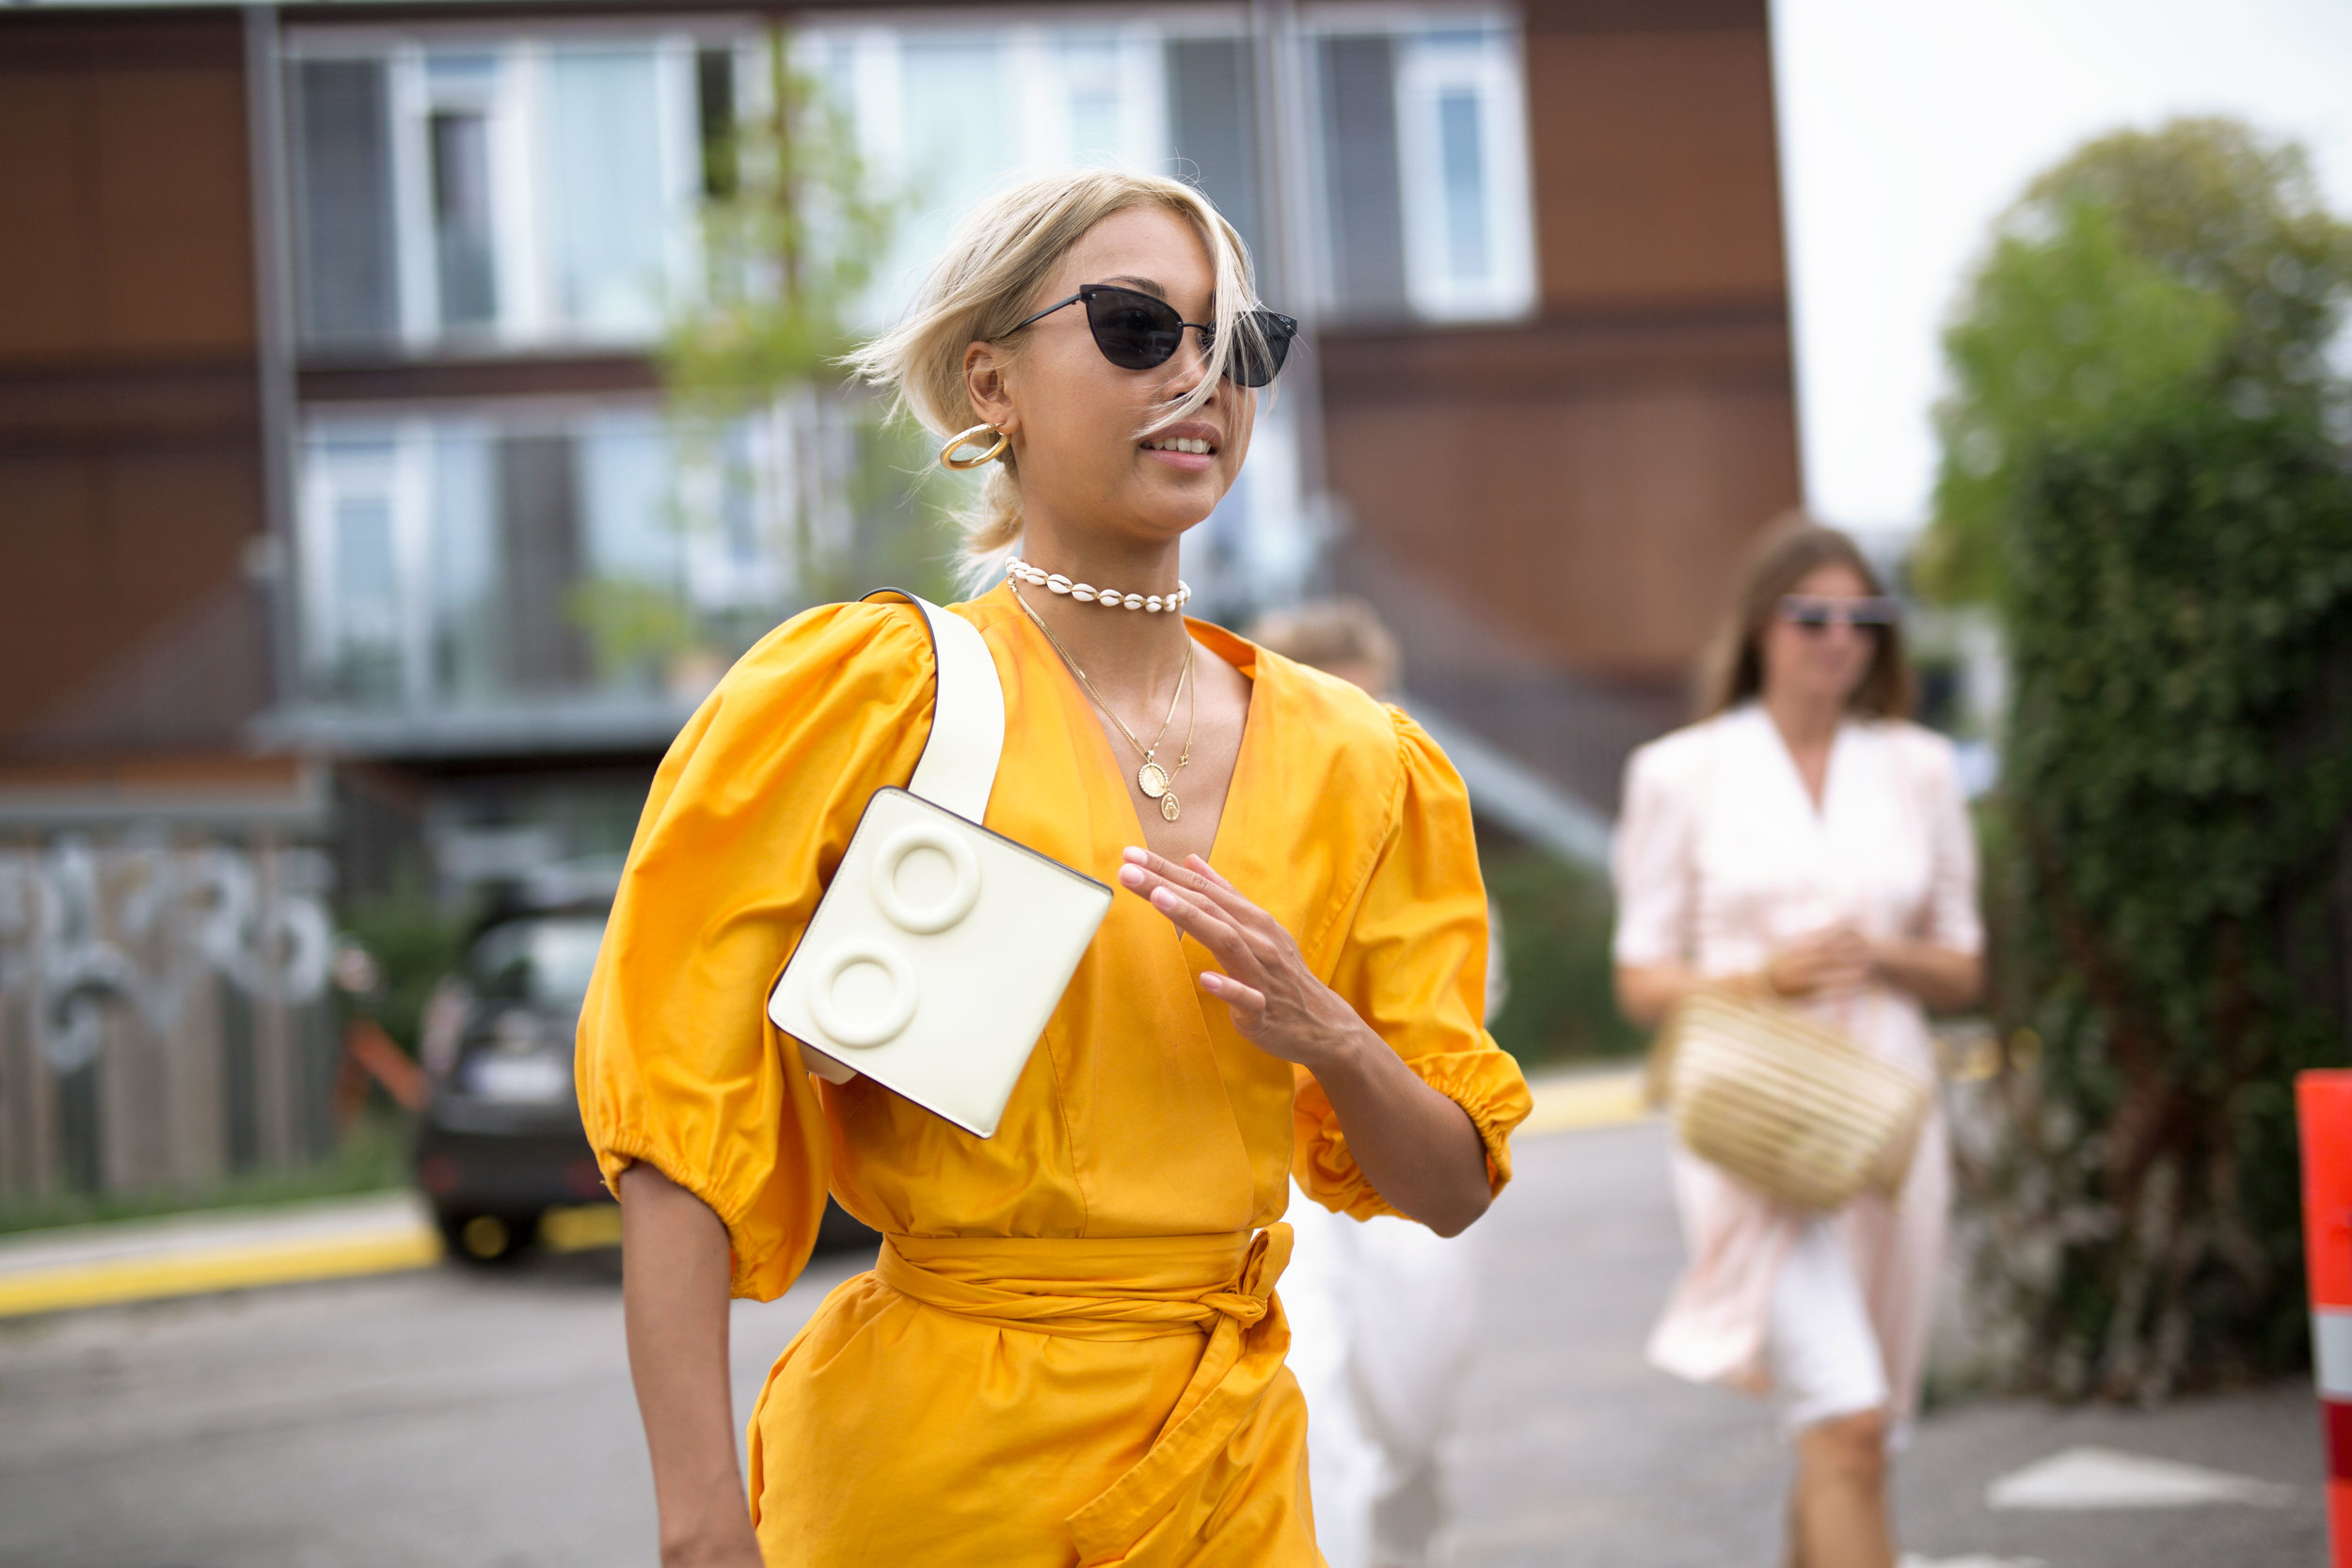 TheStreetland_Copenhagen_Fashion_Week_SS19_92.jpg